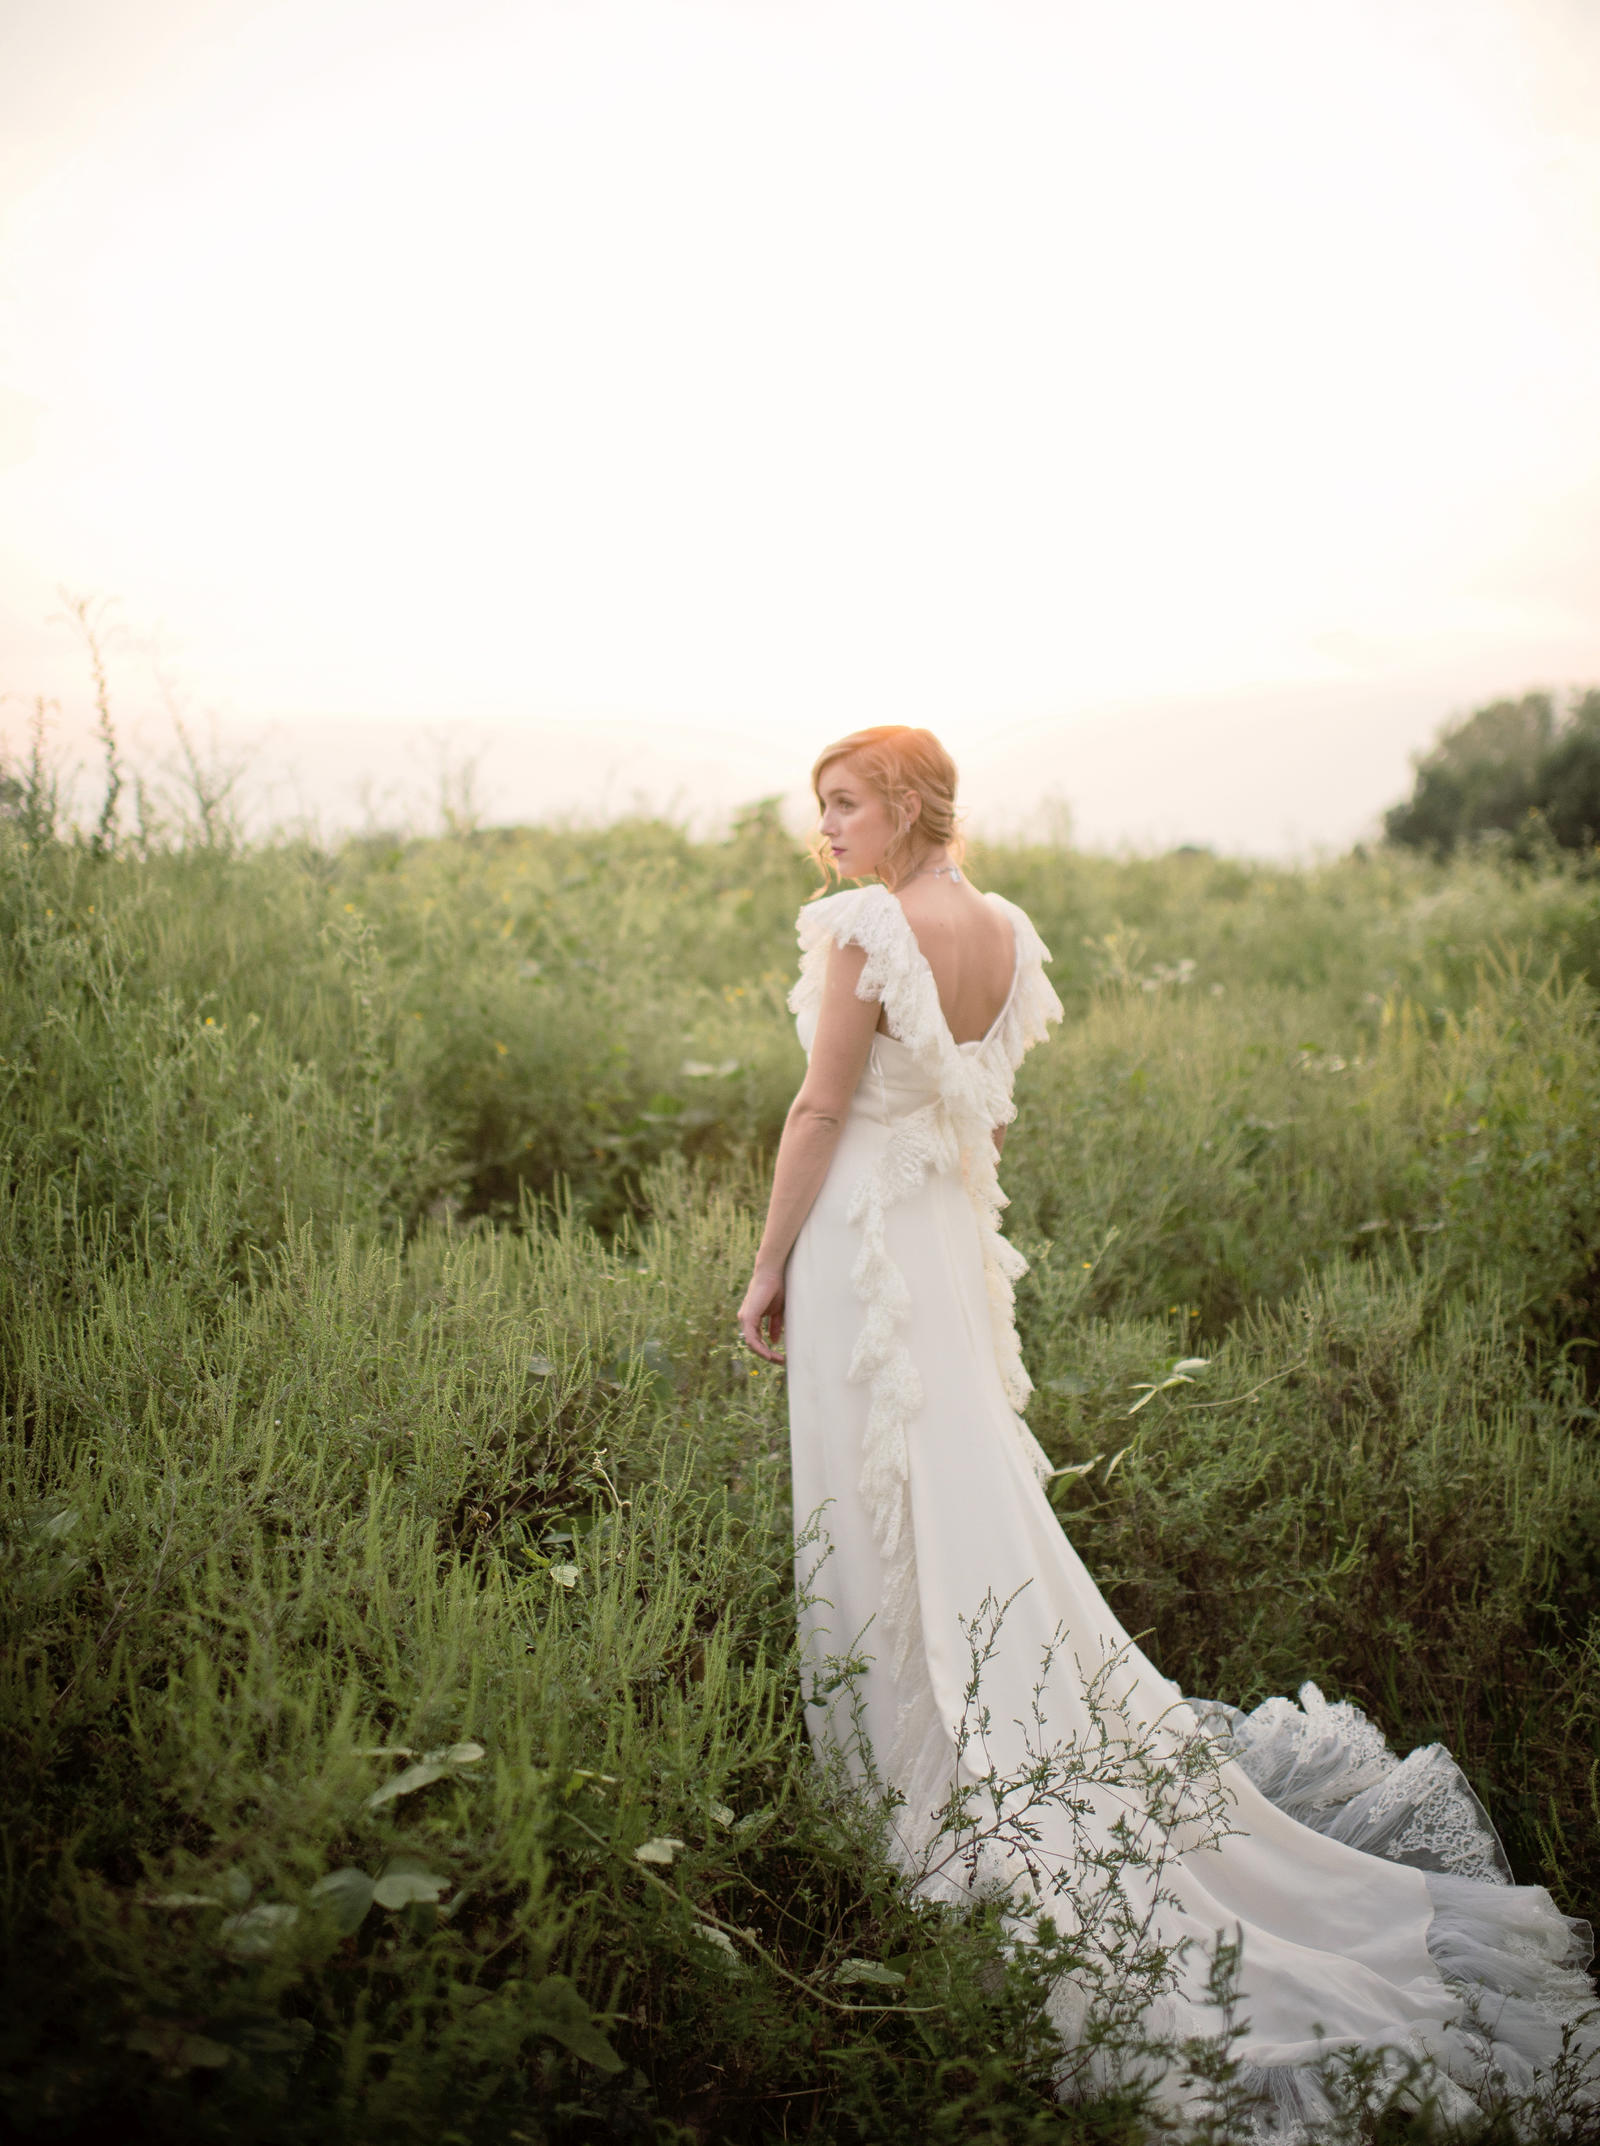 Editorial Photography | Atlanta, GA | A model in an elegant dress with a long train stands in an overgrown field.